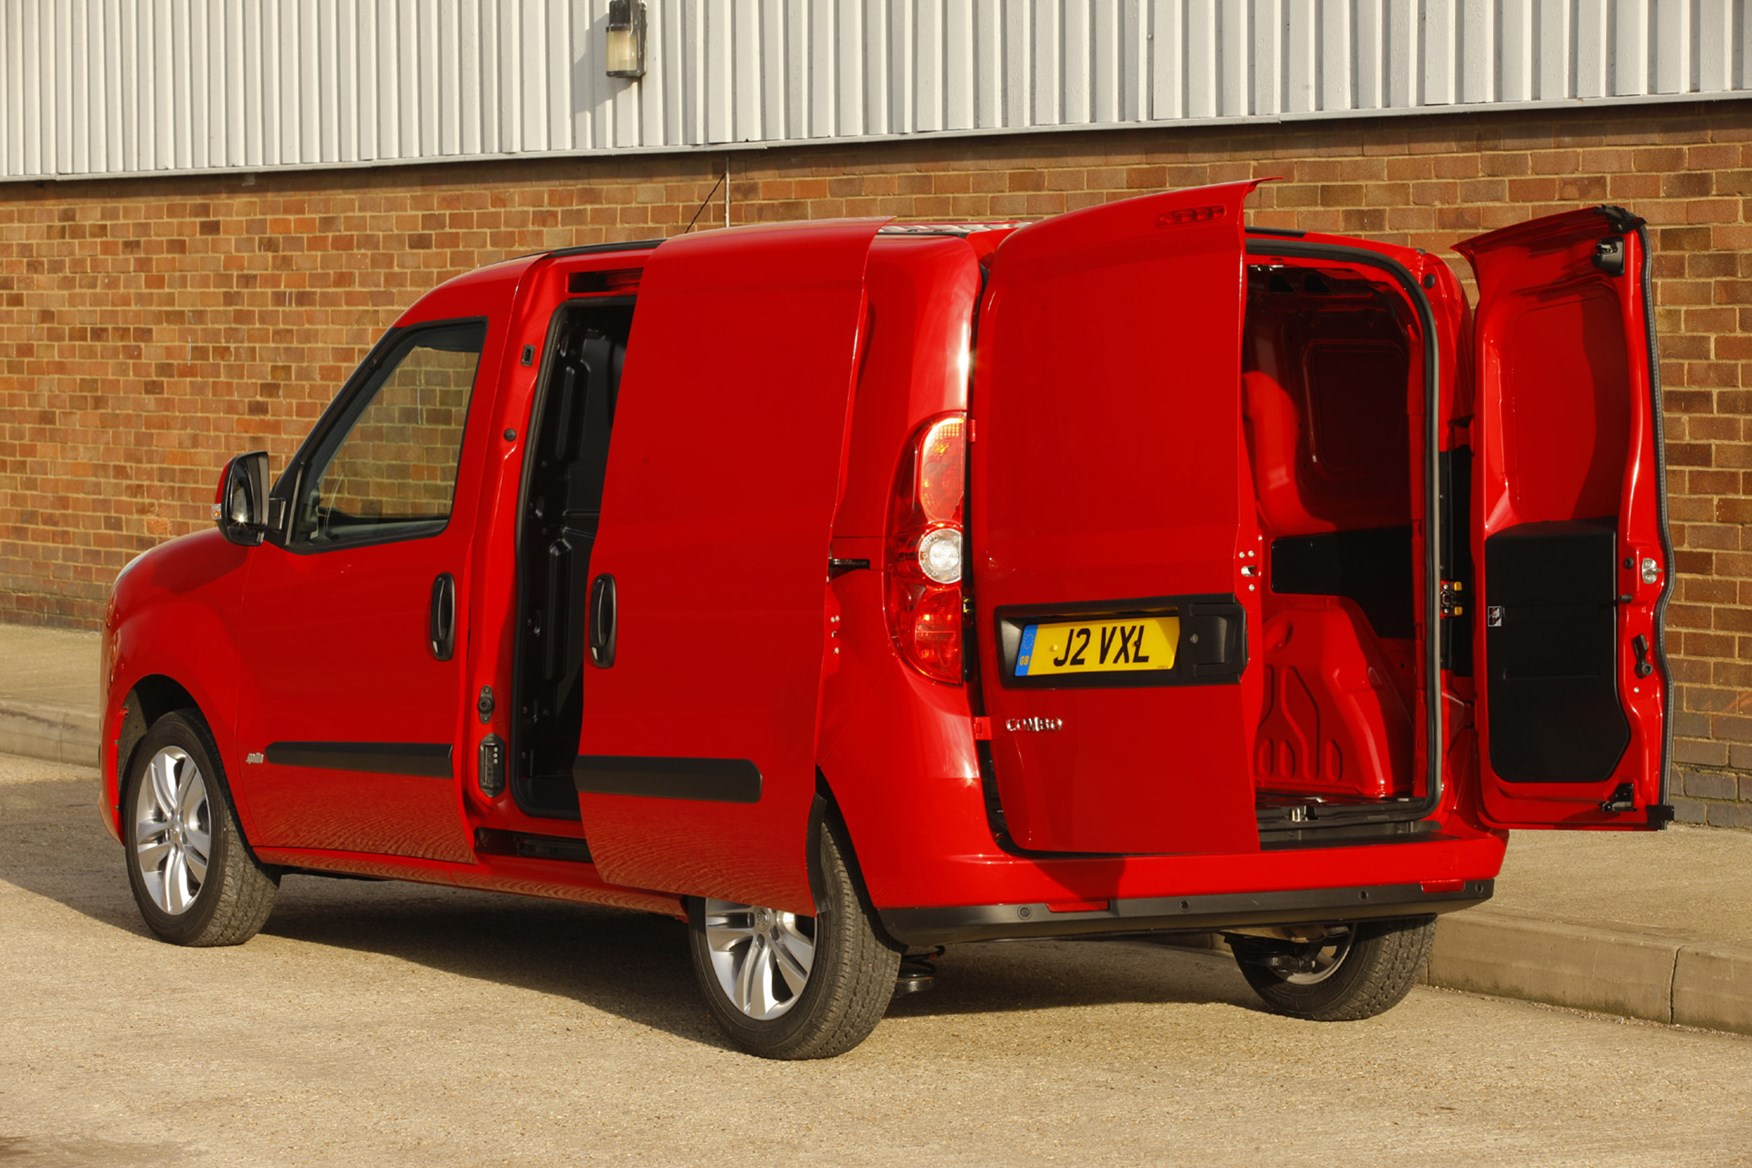 Vauxhall Combo full review on Parkers Vans - load area access